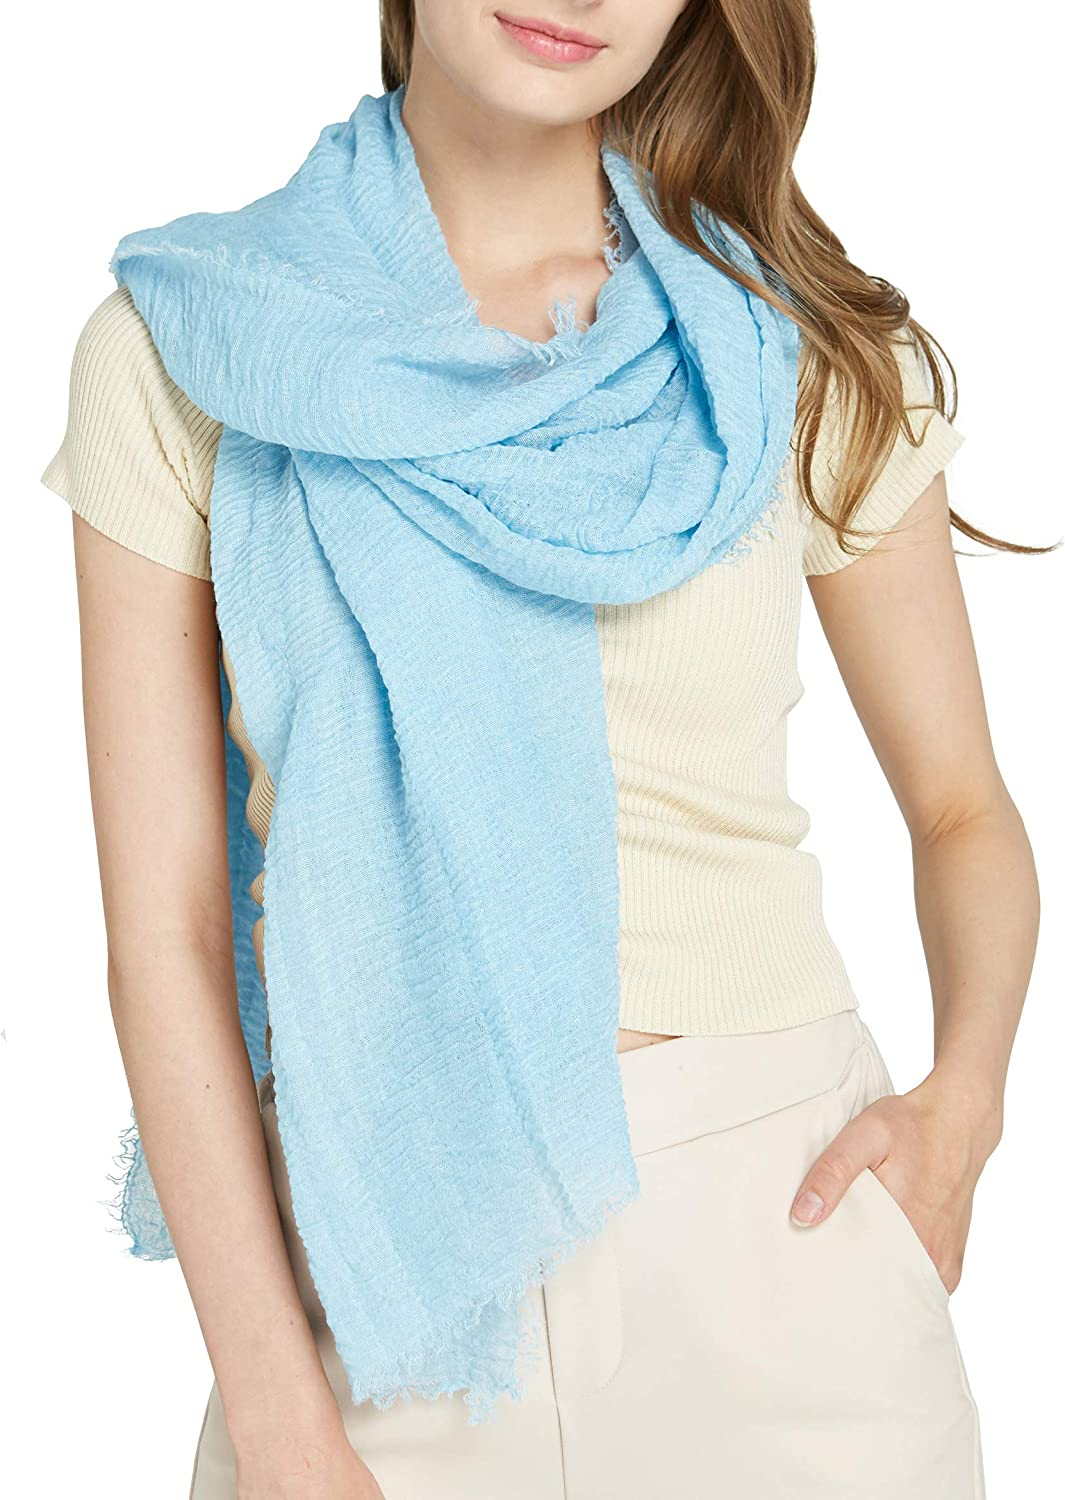 Long Plain Scarf Large Wrap for Women  Big Solid Crashed Wrinkle Soft Hair Scarf and Shawl